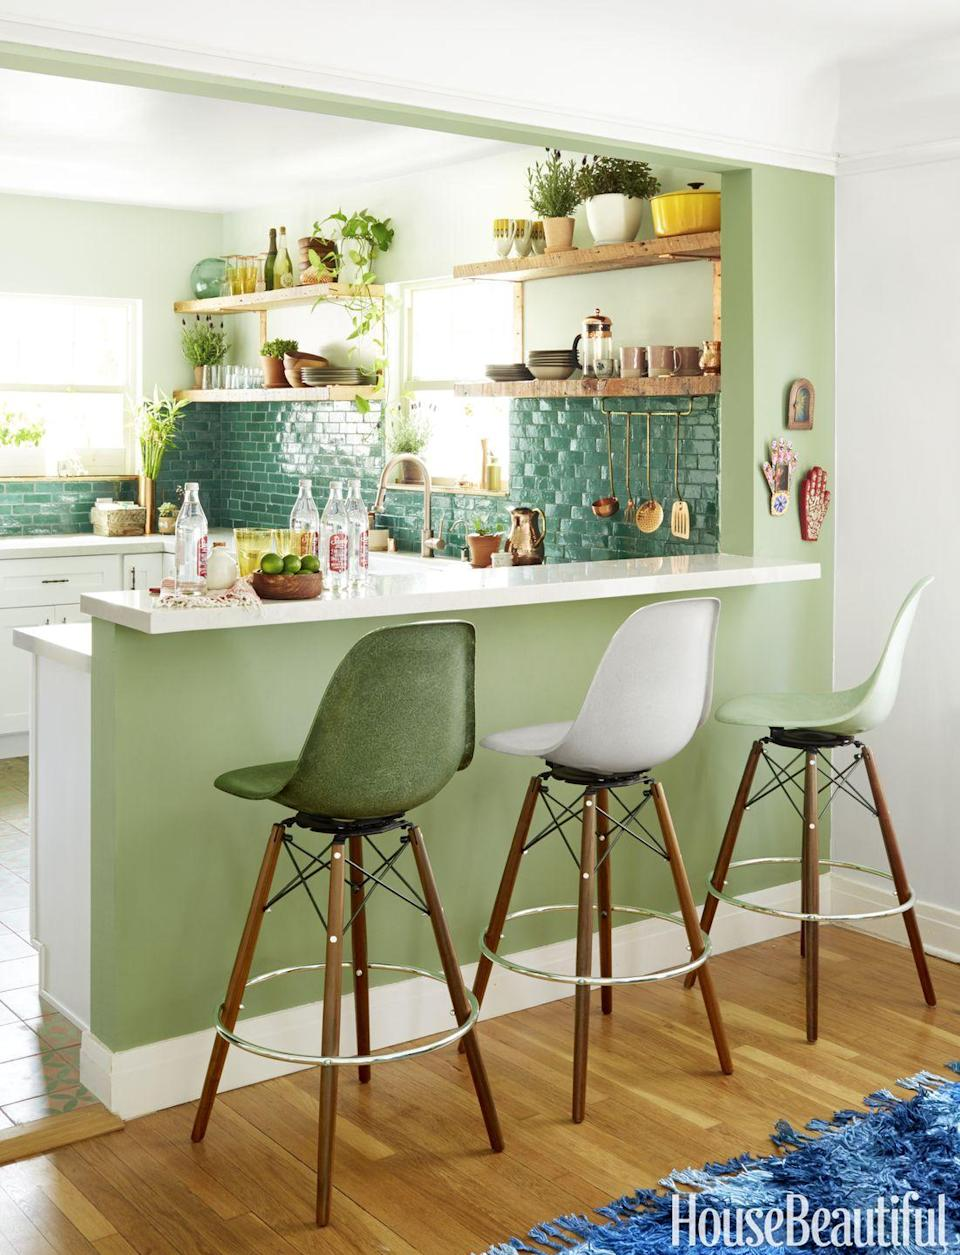 "<p>A pale green blends seamlessly between the kitchen and dining area of this <a href=""https://www.housebeautiful.com/design-inspiration/house-tours/g3610/justina-blakeney-jungalow-tour/"" rel=""nofollow noopener"" target=""_blank"" data-ylk=""slk:&quot;jungalow,&quot;"" class=""link rapid-noclick-resp"">""jungalow,""</a> by Justina Blakeney, especially when paired with the Moroccan clay tile backsplash and ombre dining bar stools in the living room. </p>"